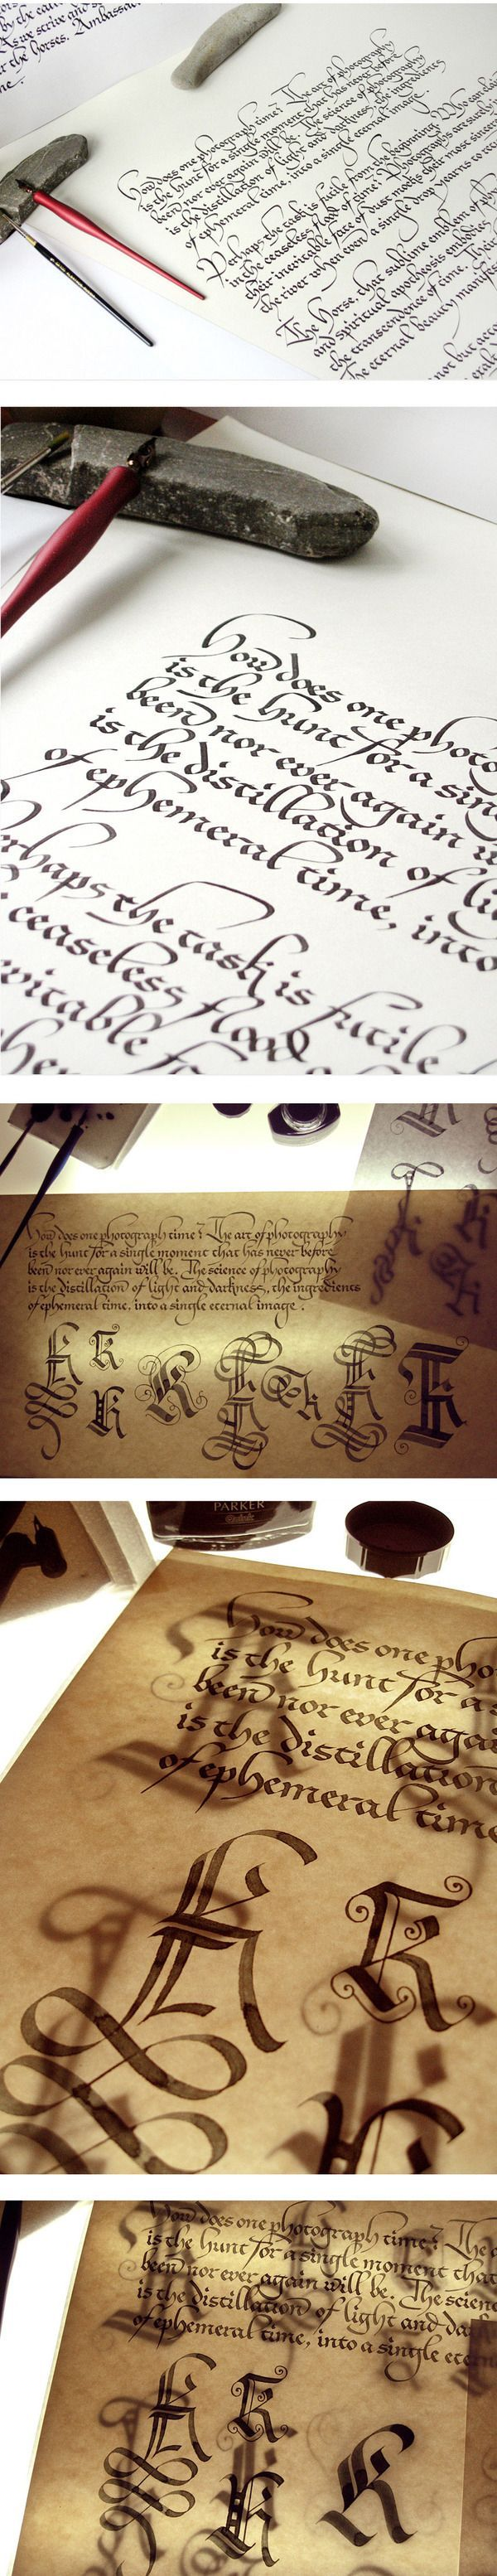 Best images about sca a s calligraphy on pinterest